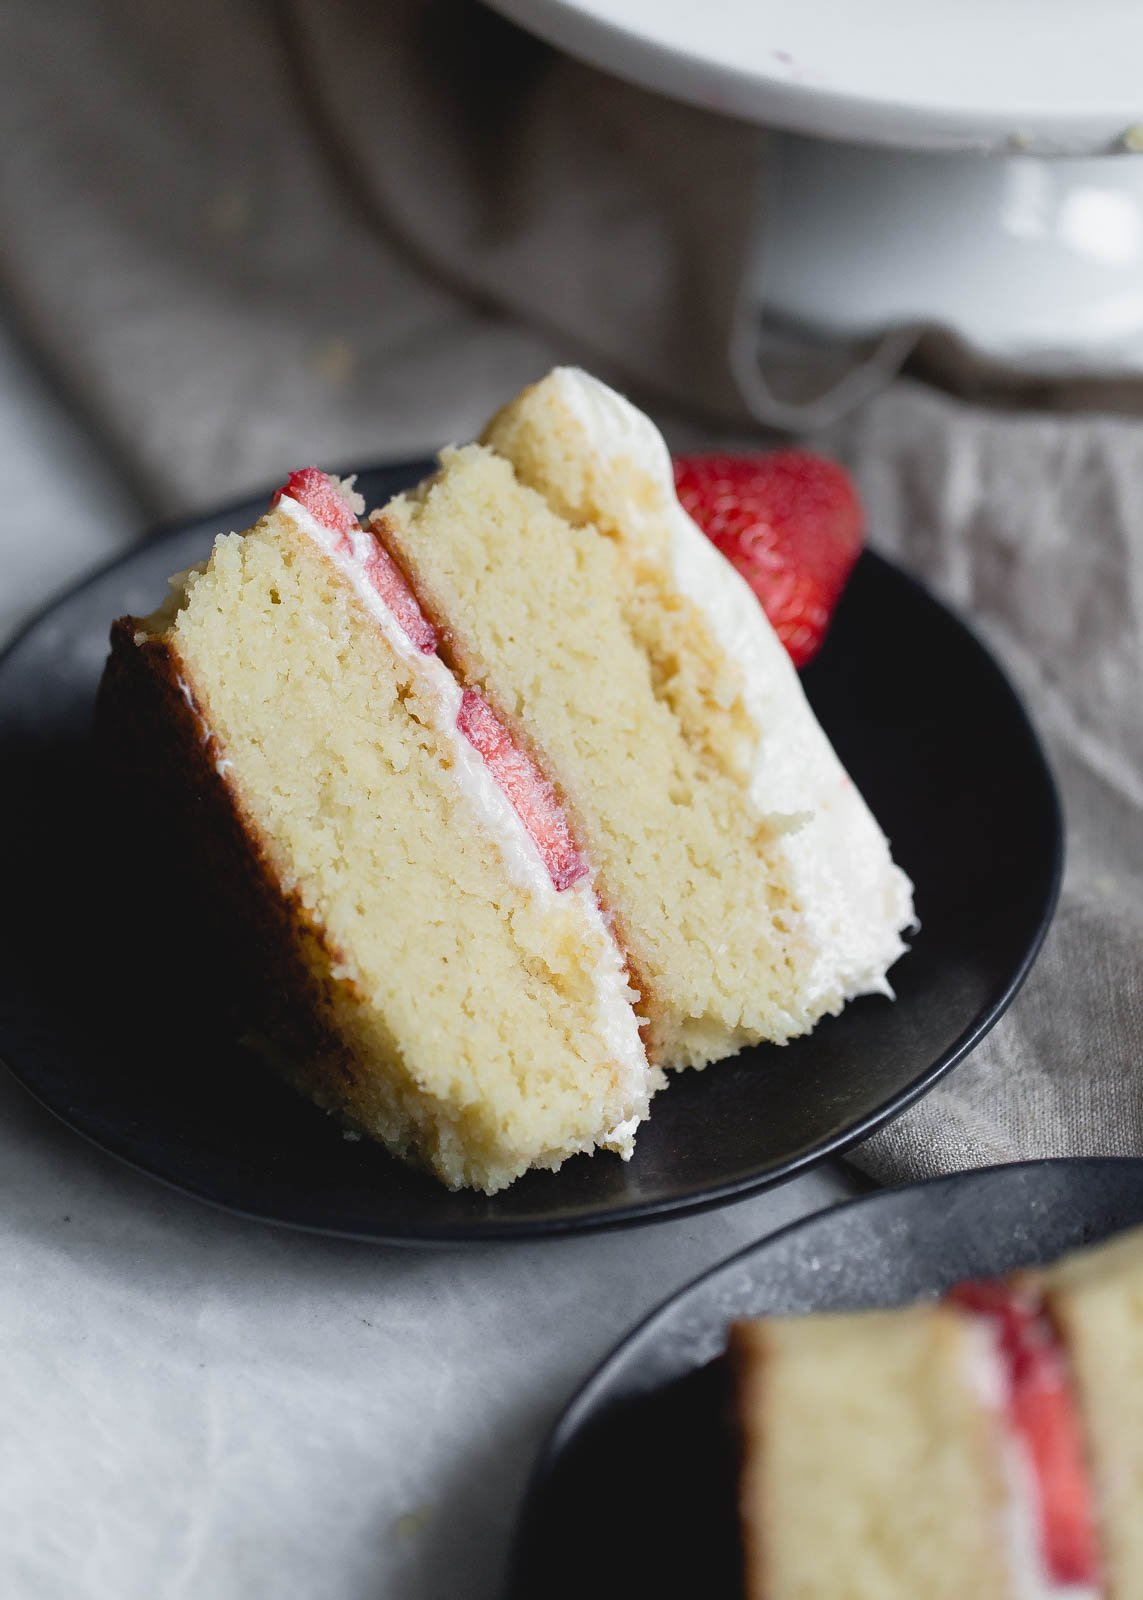 Looking for a beautiful grain free dessert to make for summer? Try this gorgeous almond flour strawberry shortcake cake made with a mix of almond & coconut flour and Almond Breeze almondmilk!